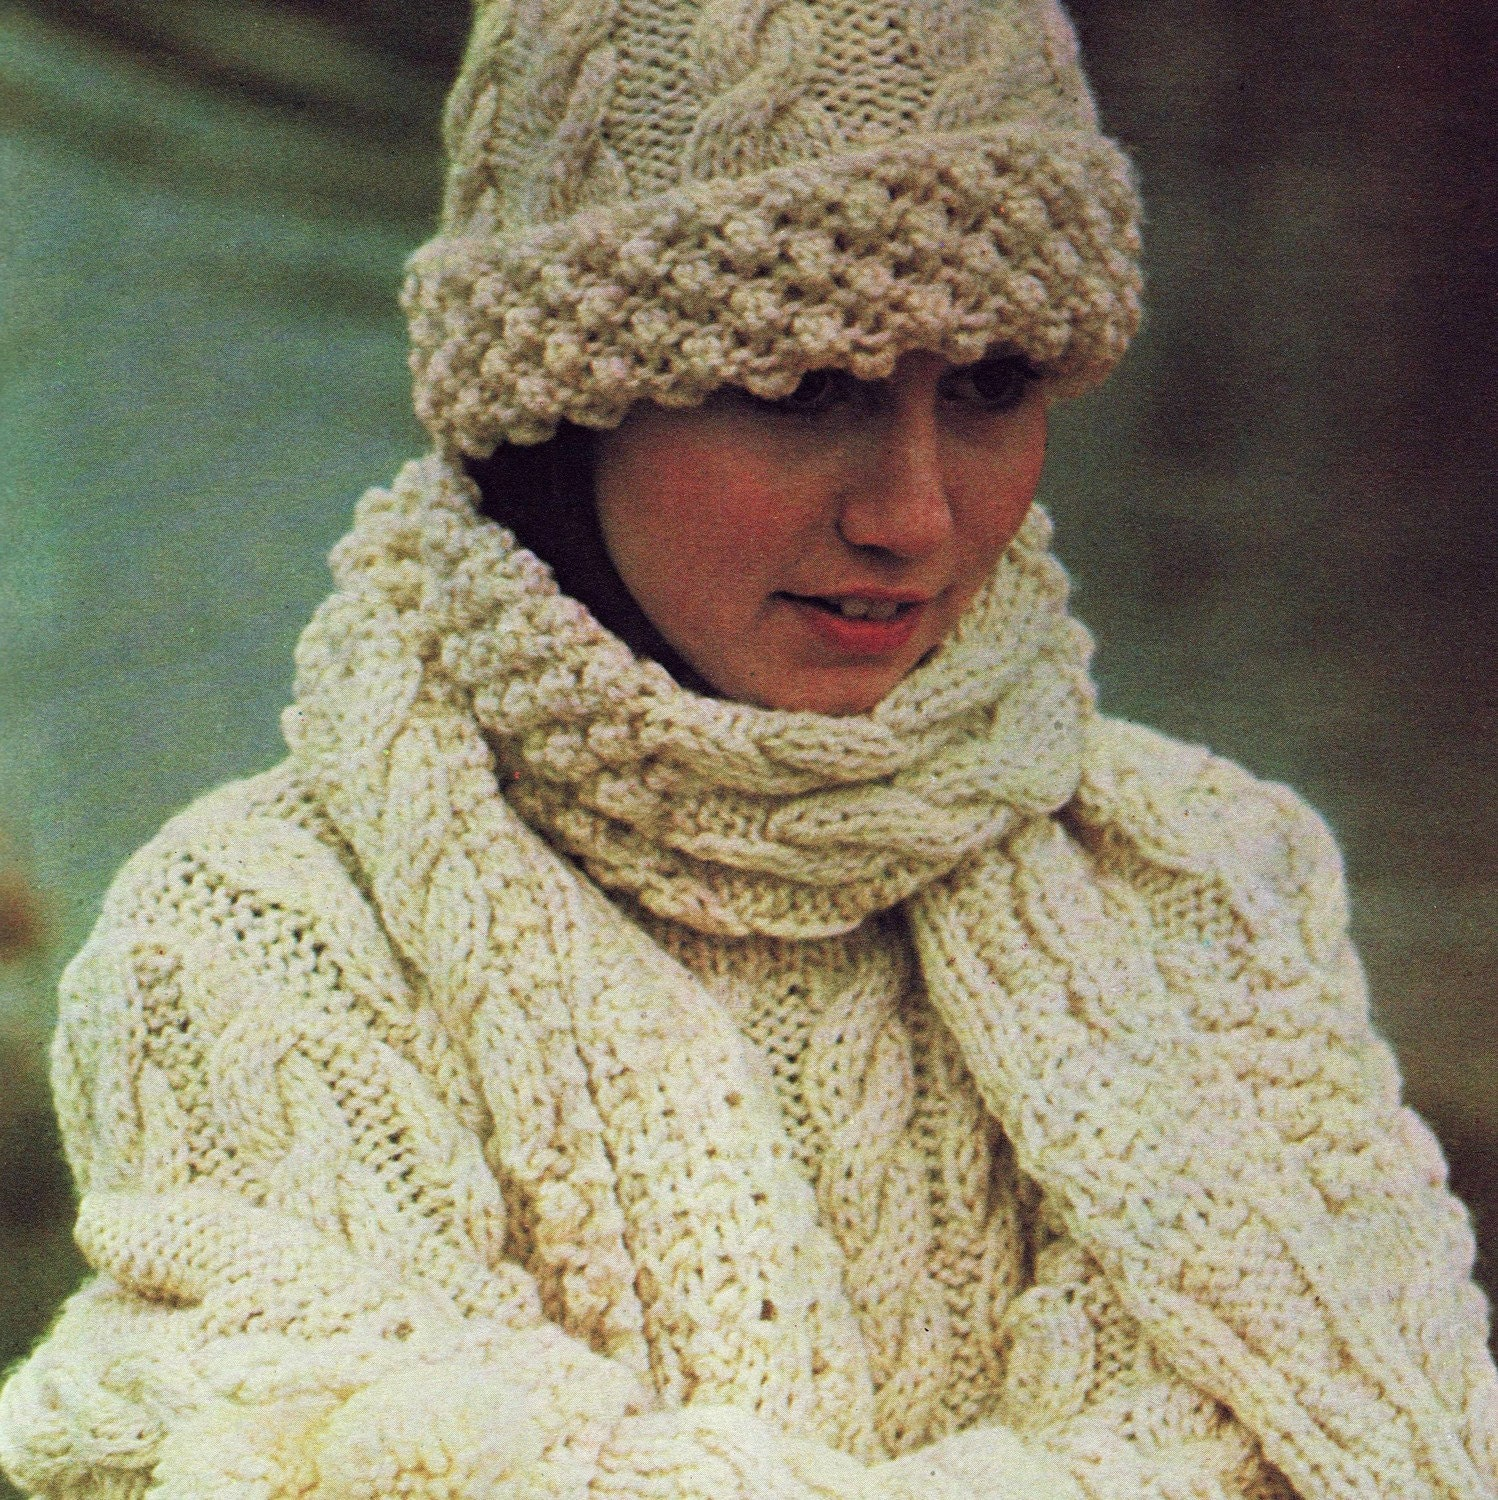 Knitting Patterns For Men s Hats And Scarves : HAT SCARF KNITTING PATTERNS   Free Patterns